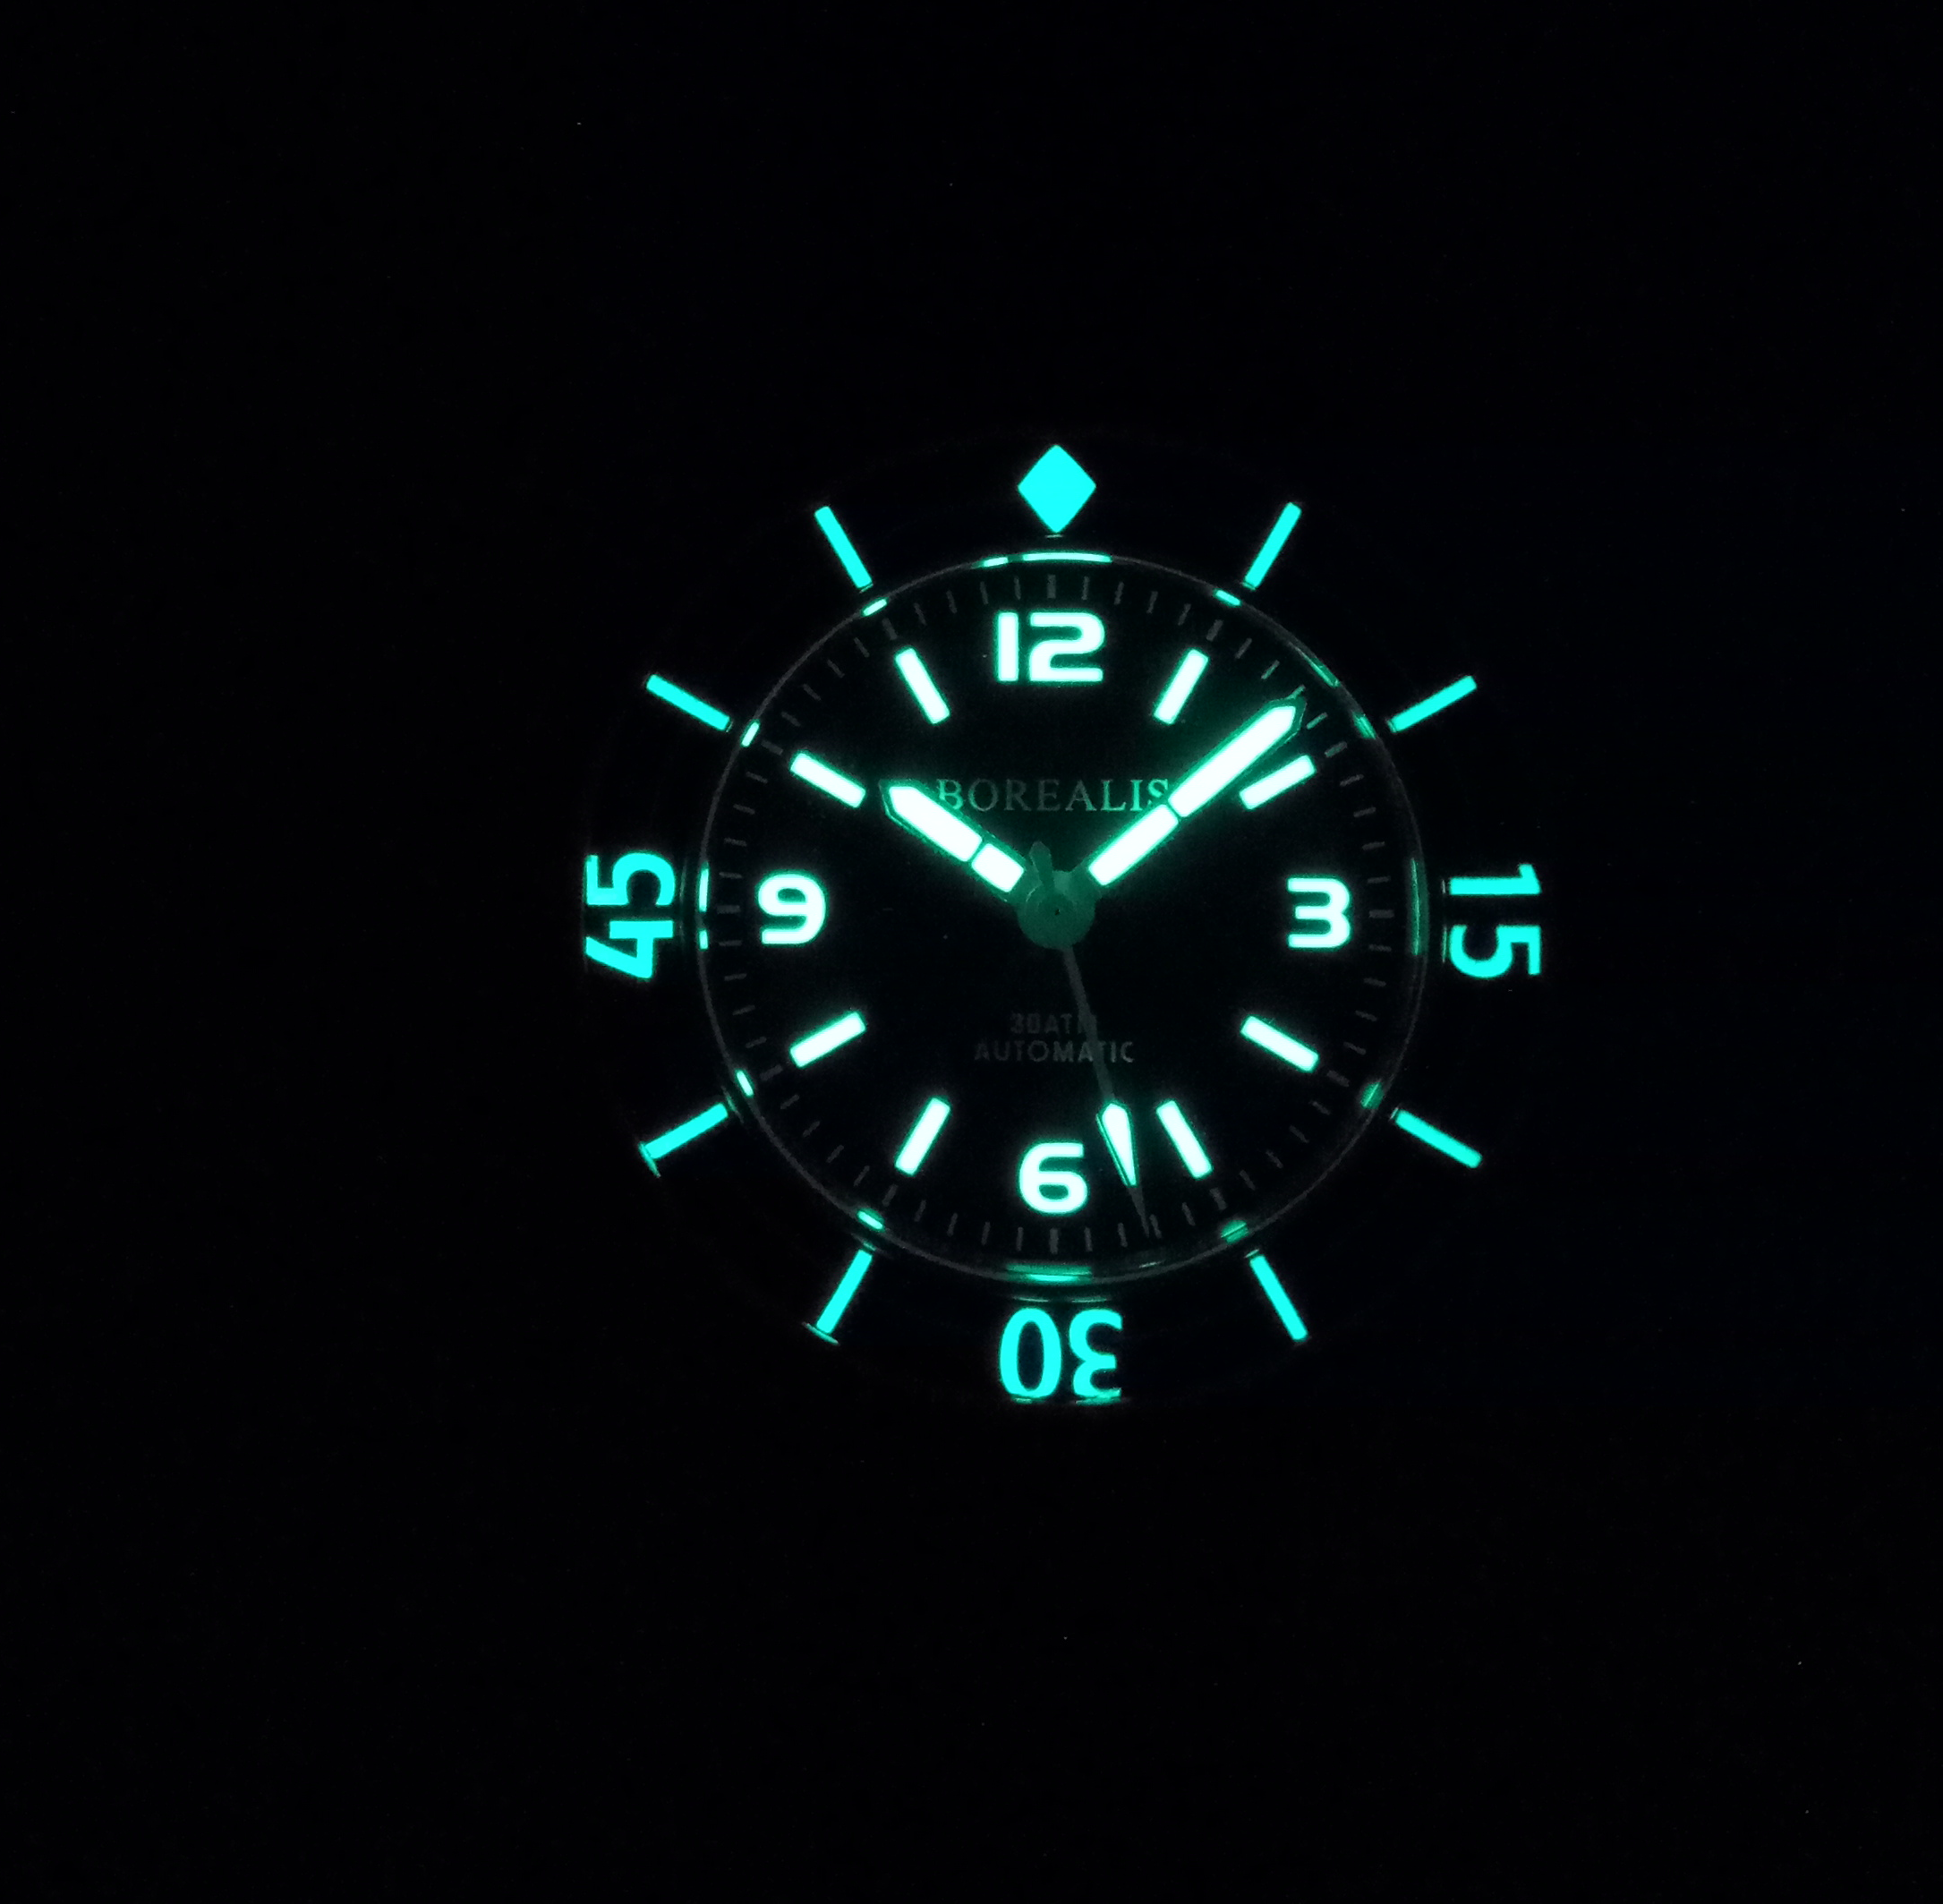 Borealis Sea Storm Version C1 Date C3 X1 Lume